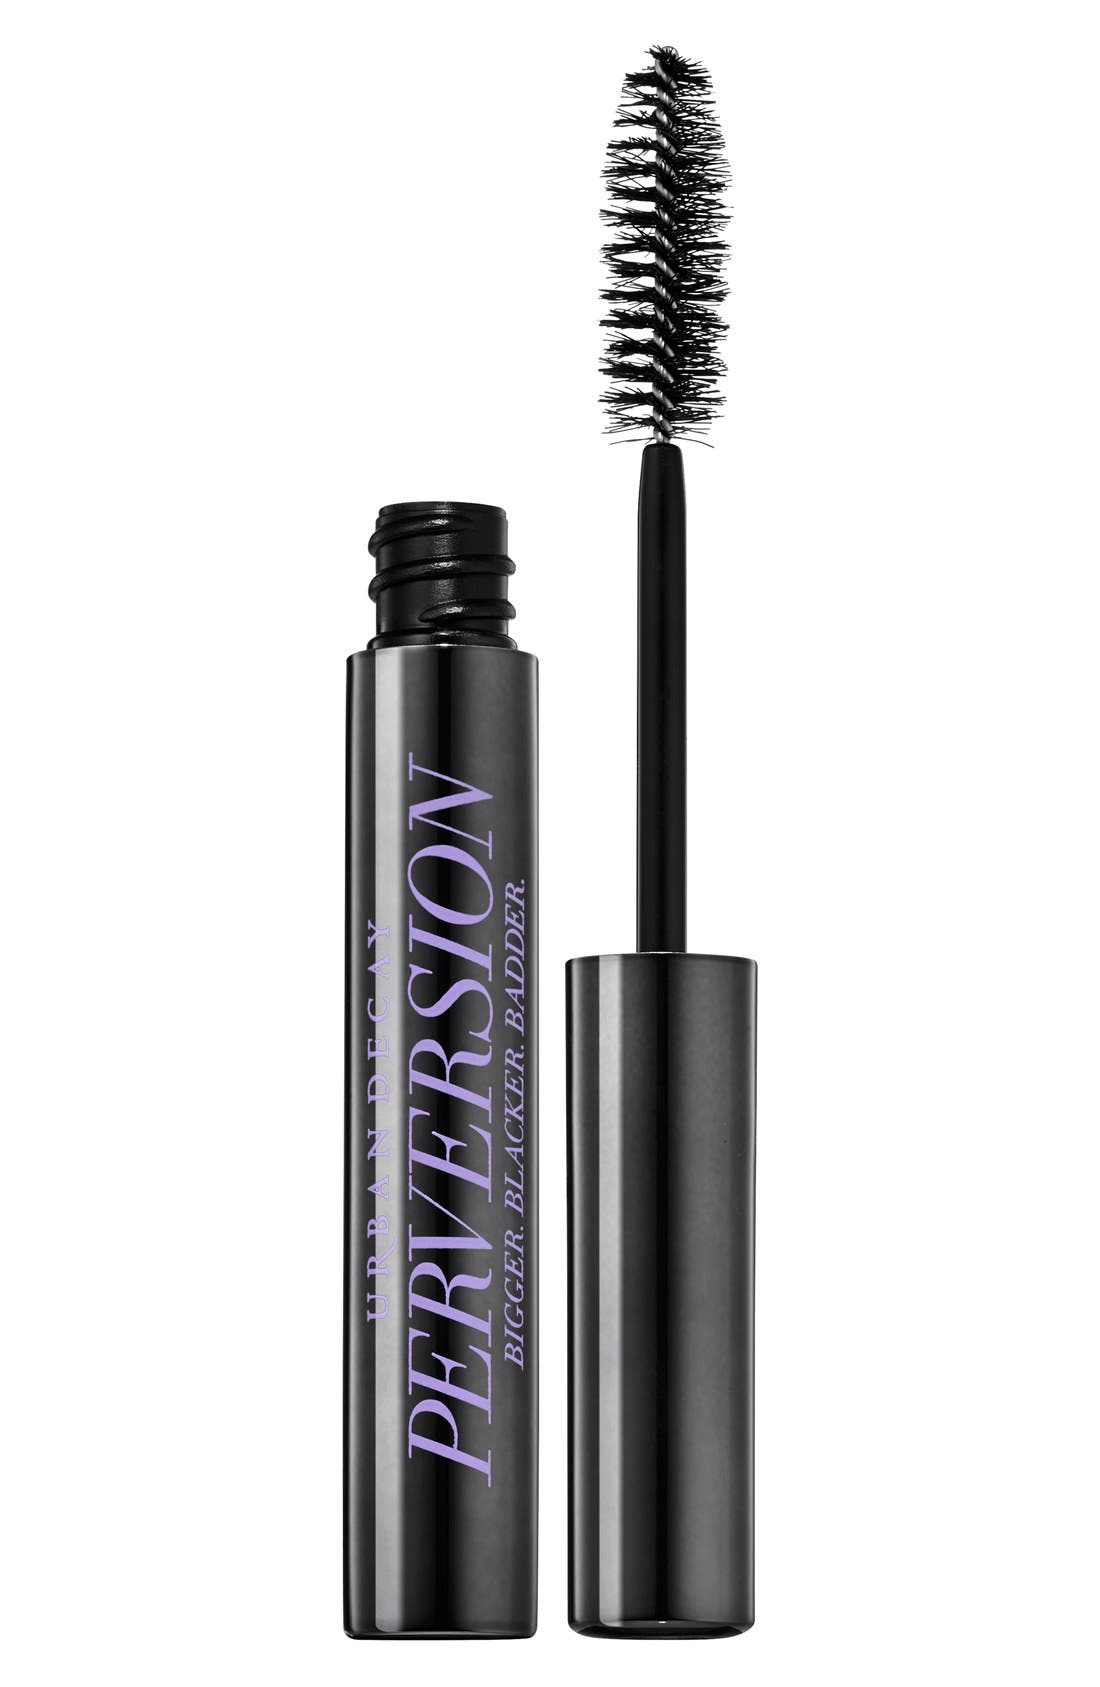 Urban Decay Perversion Mascara (Travel Size)